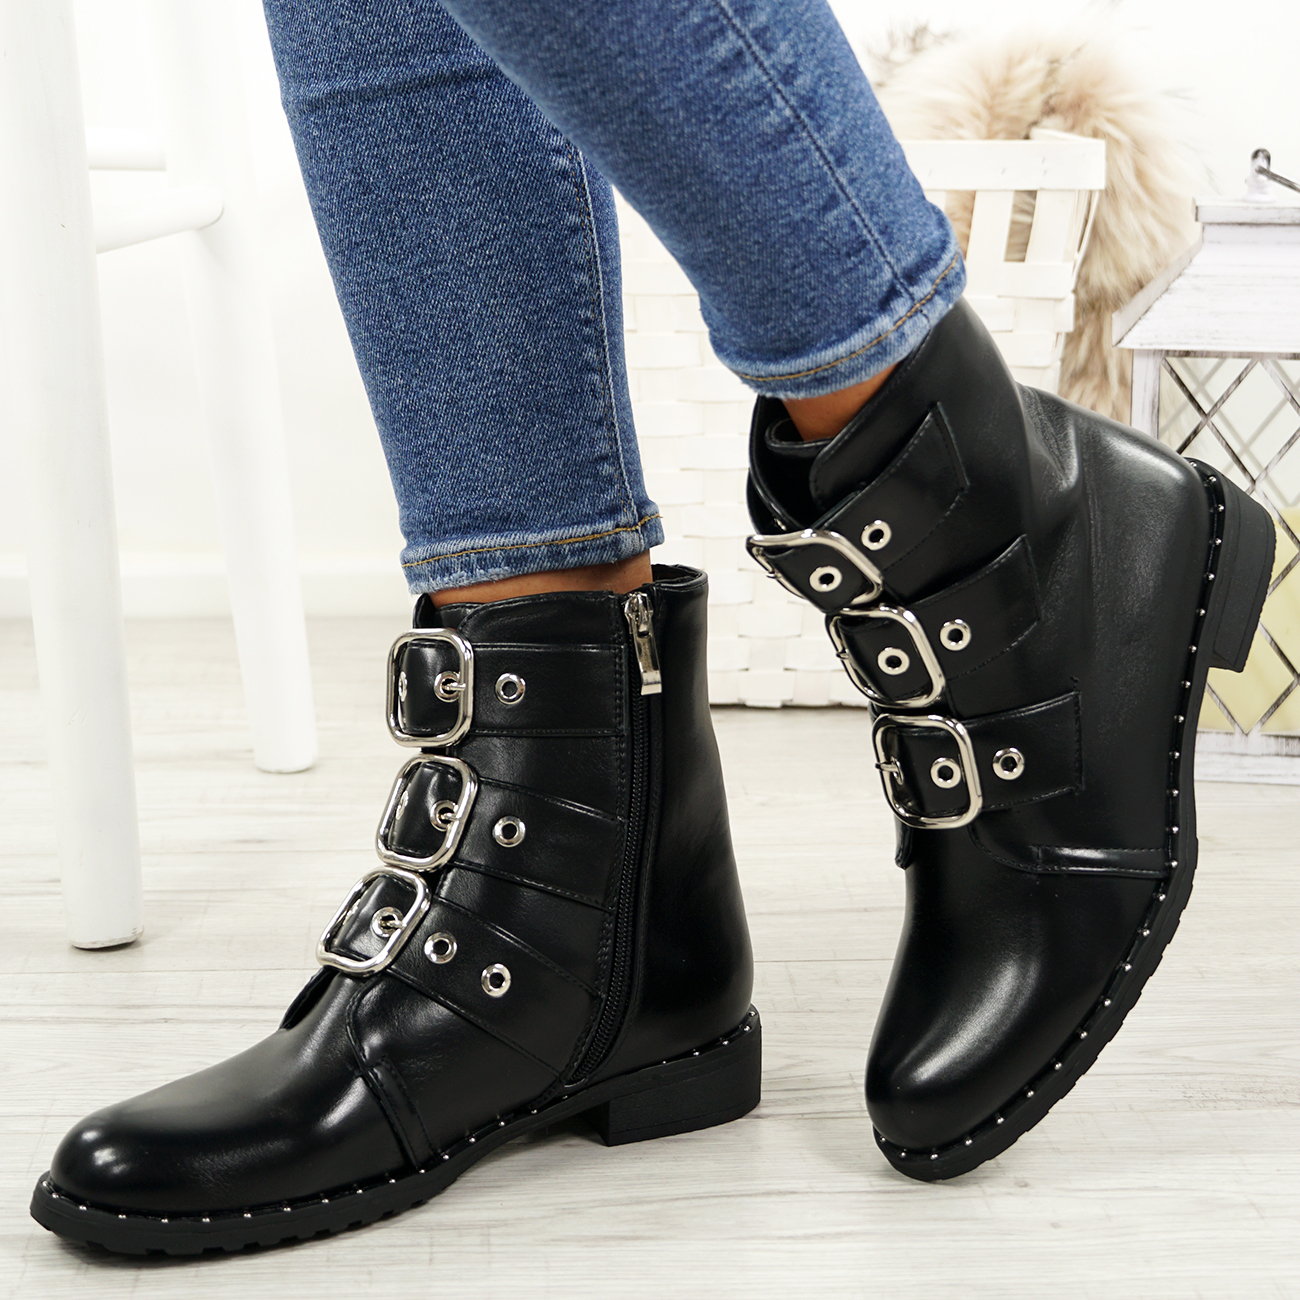 LADIES-WOMENS-BIKER-ANKLE-BOOTS-ZIP-STUDDED-LOW-HEEL-COMFY-SHOES-SIZES thumbnail 10